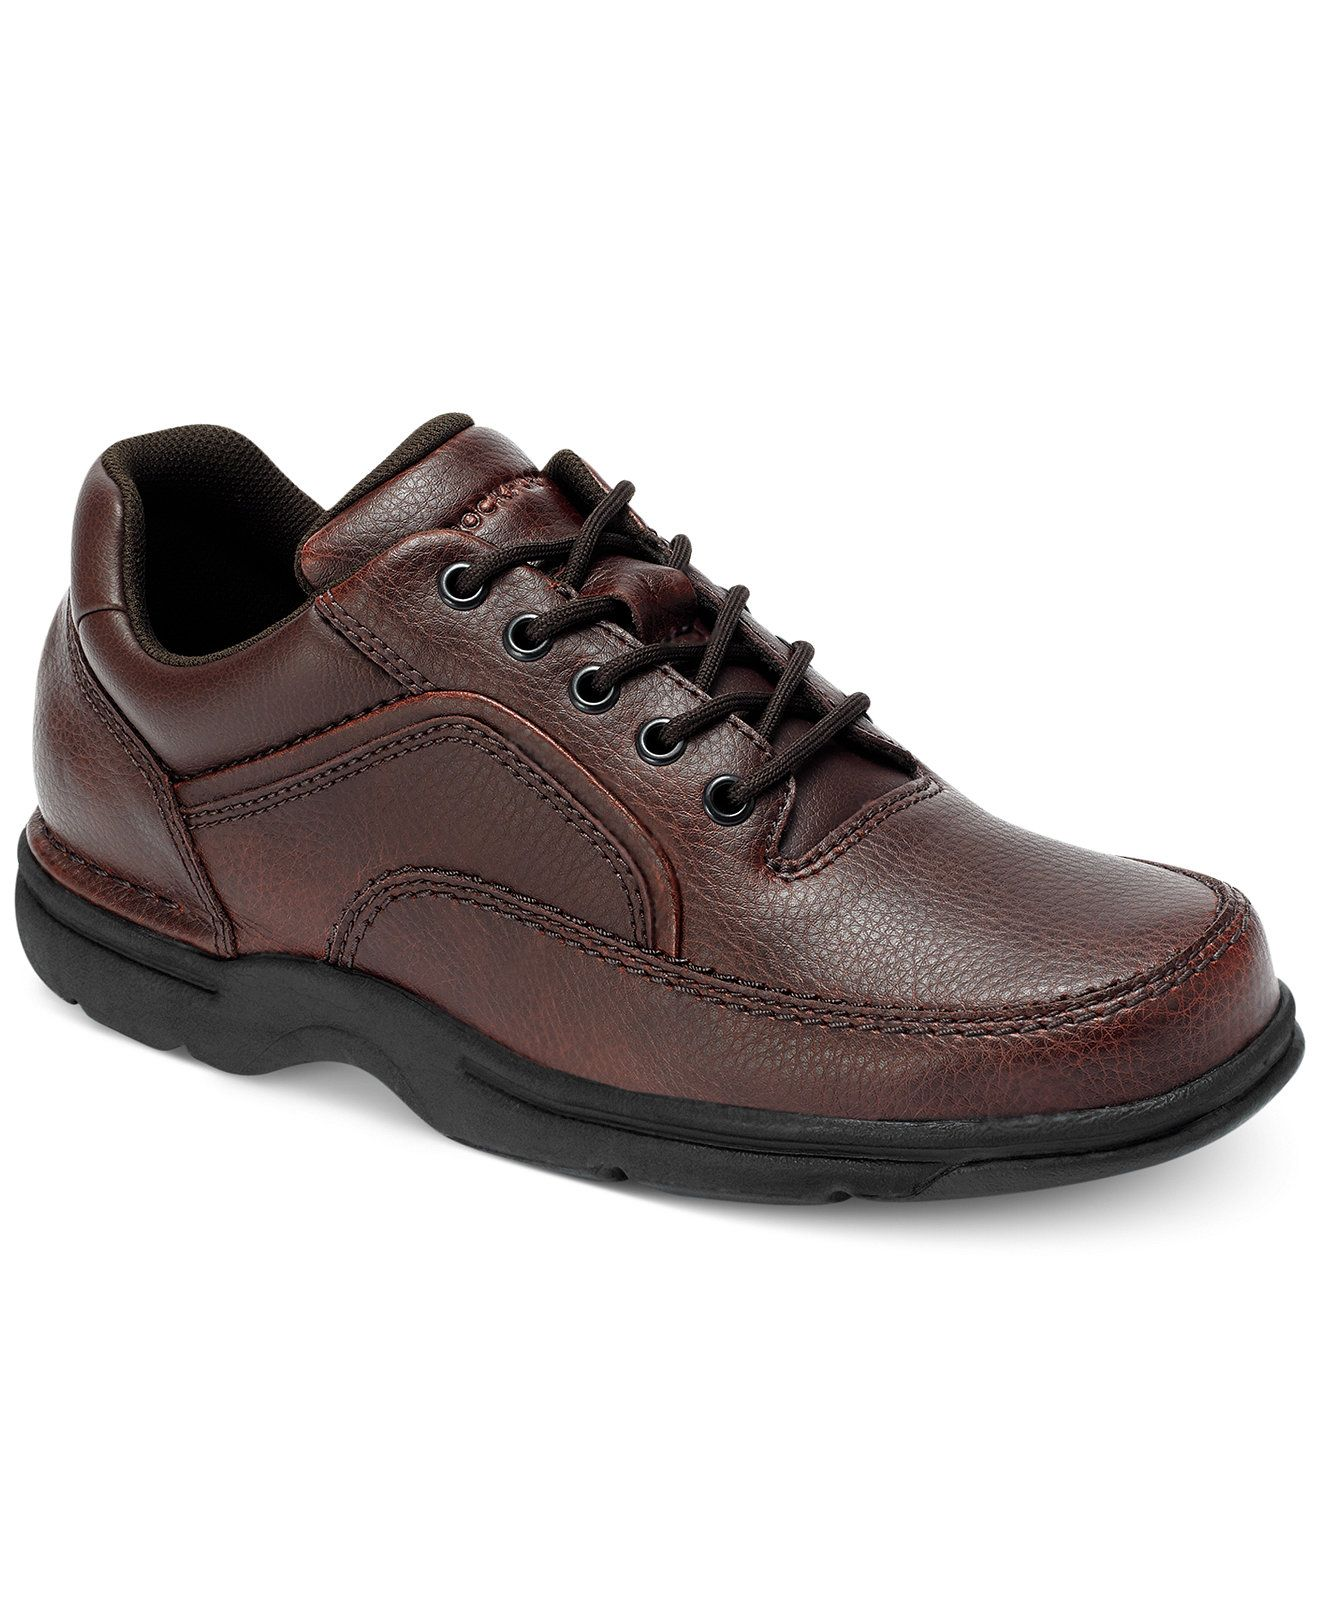 Rockport Eureka Walking Shoe - Shoes - Men - Macy's